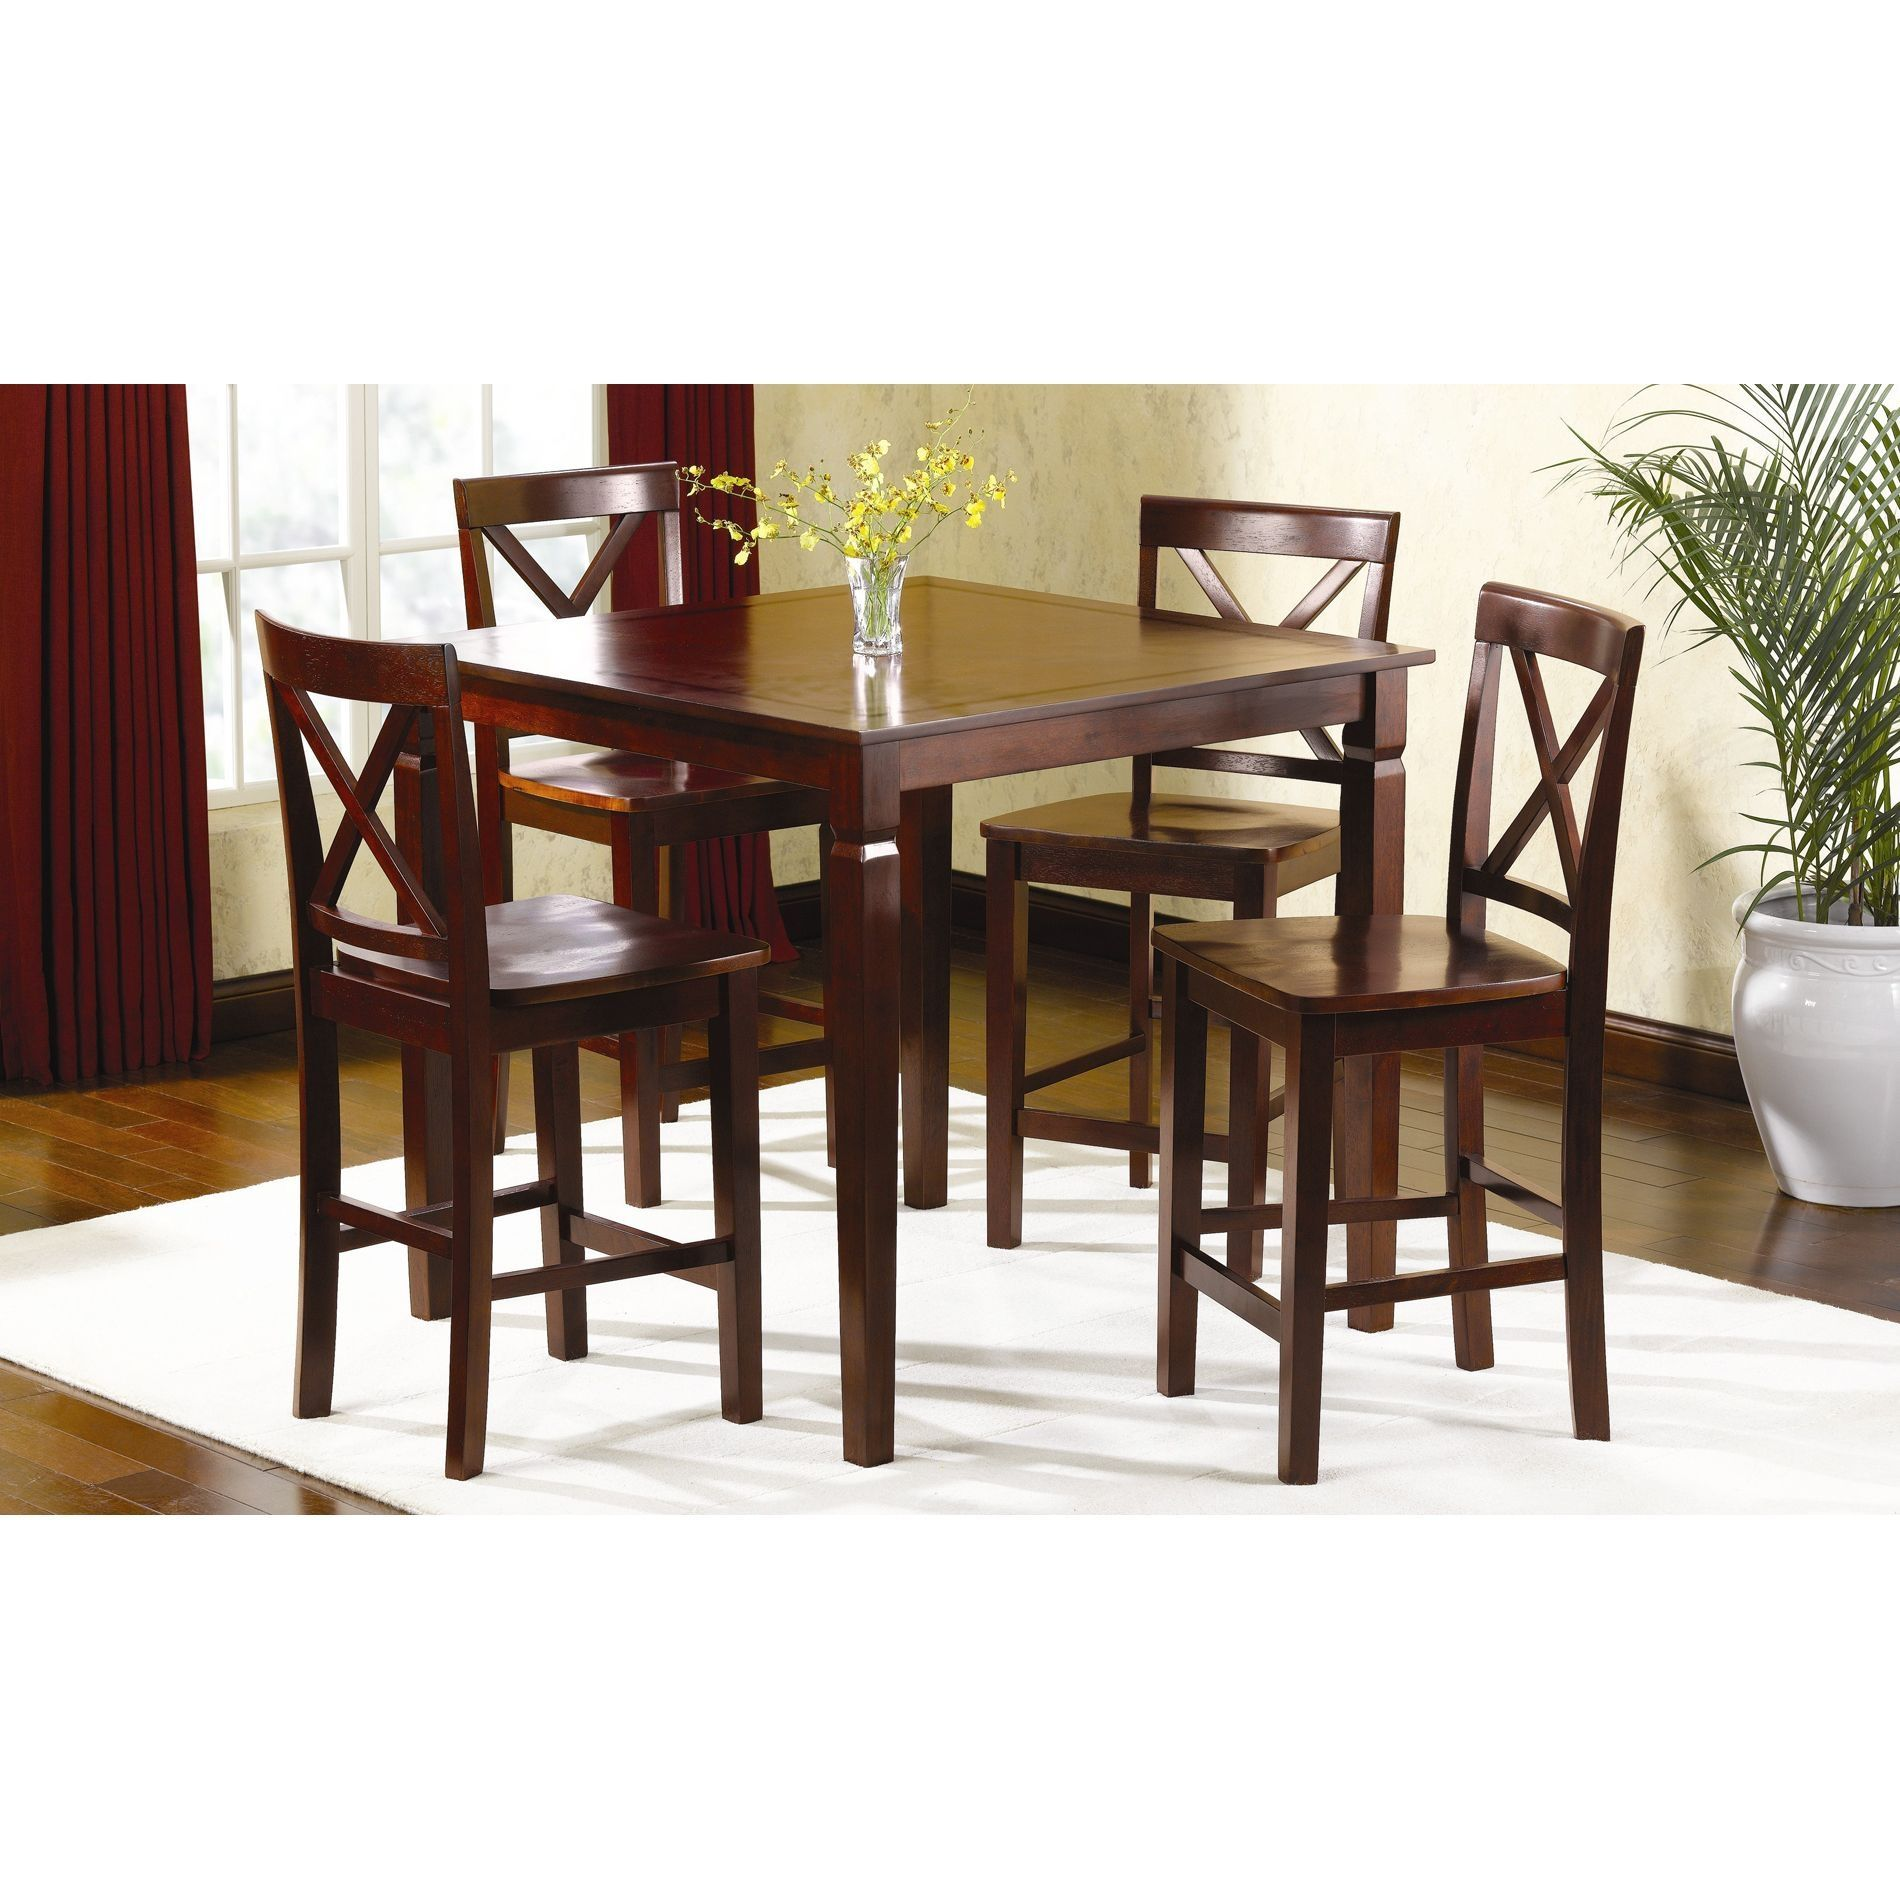 High Top Kitchen Tables Kmart | http://manageditservicesatlanta.net ...